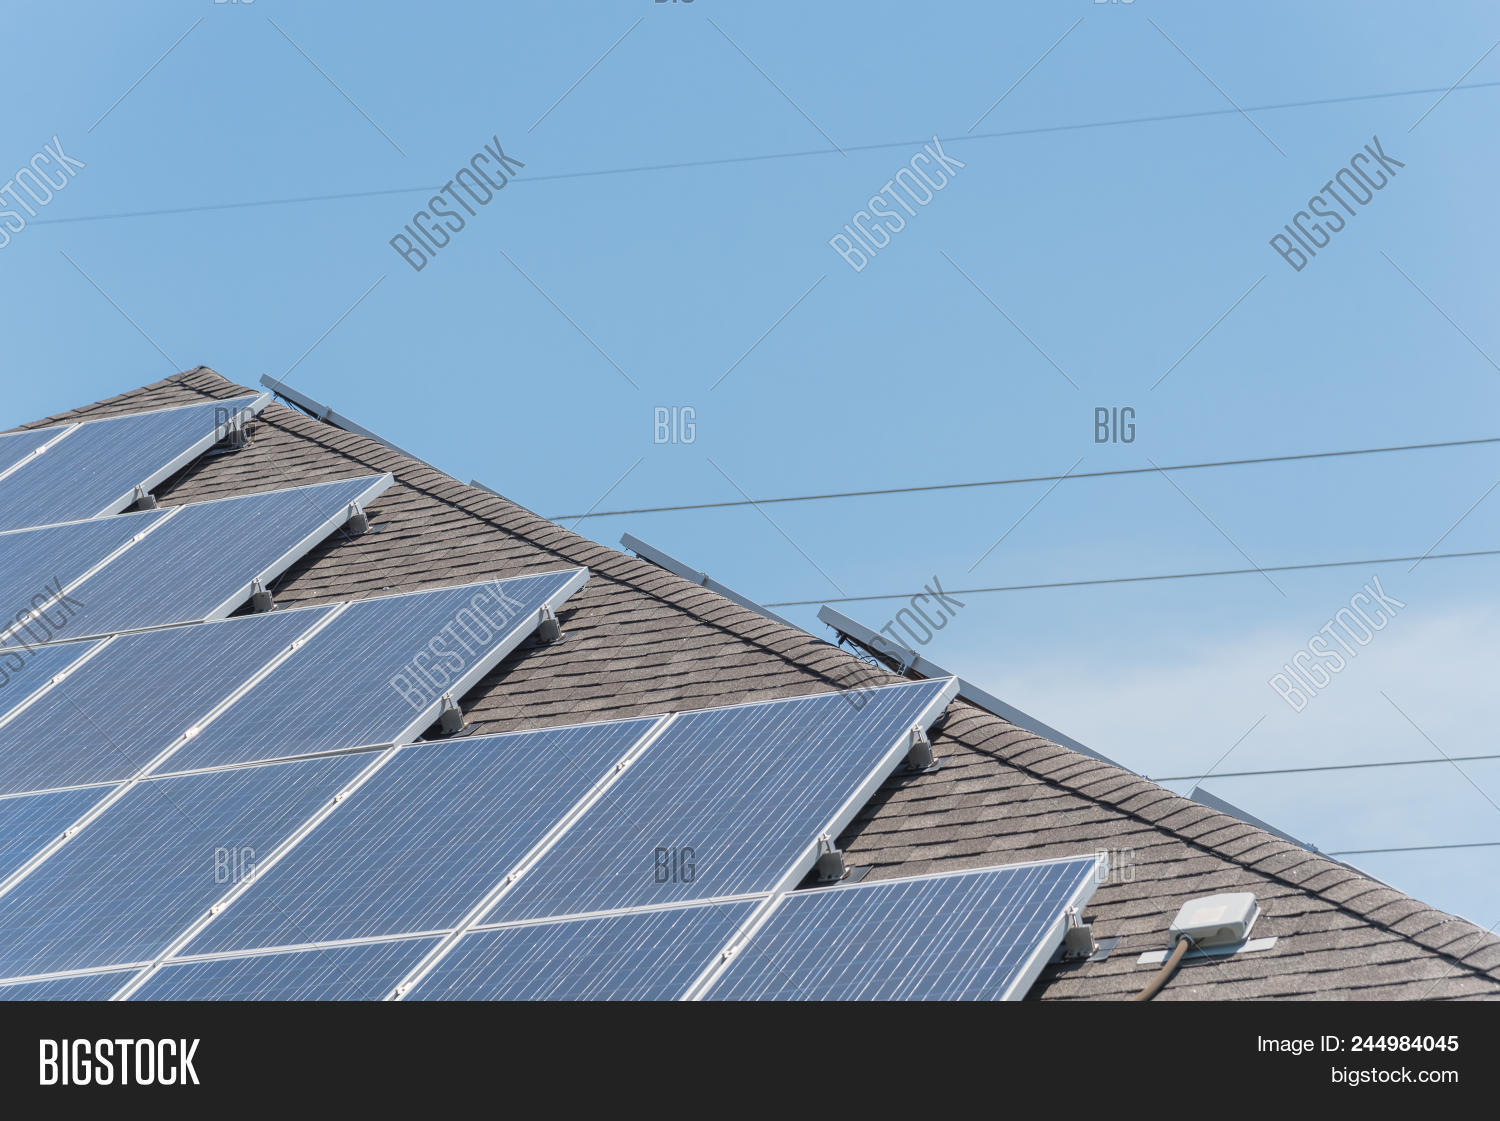 Rooftop Solar Panel Image & Photo (Free Trial) | Bigstock